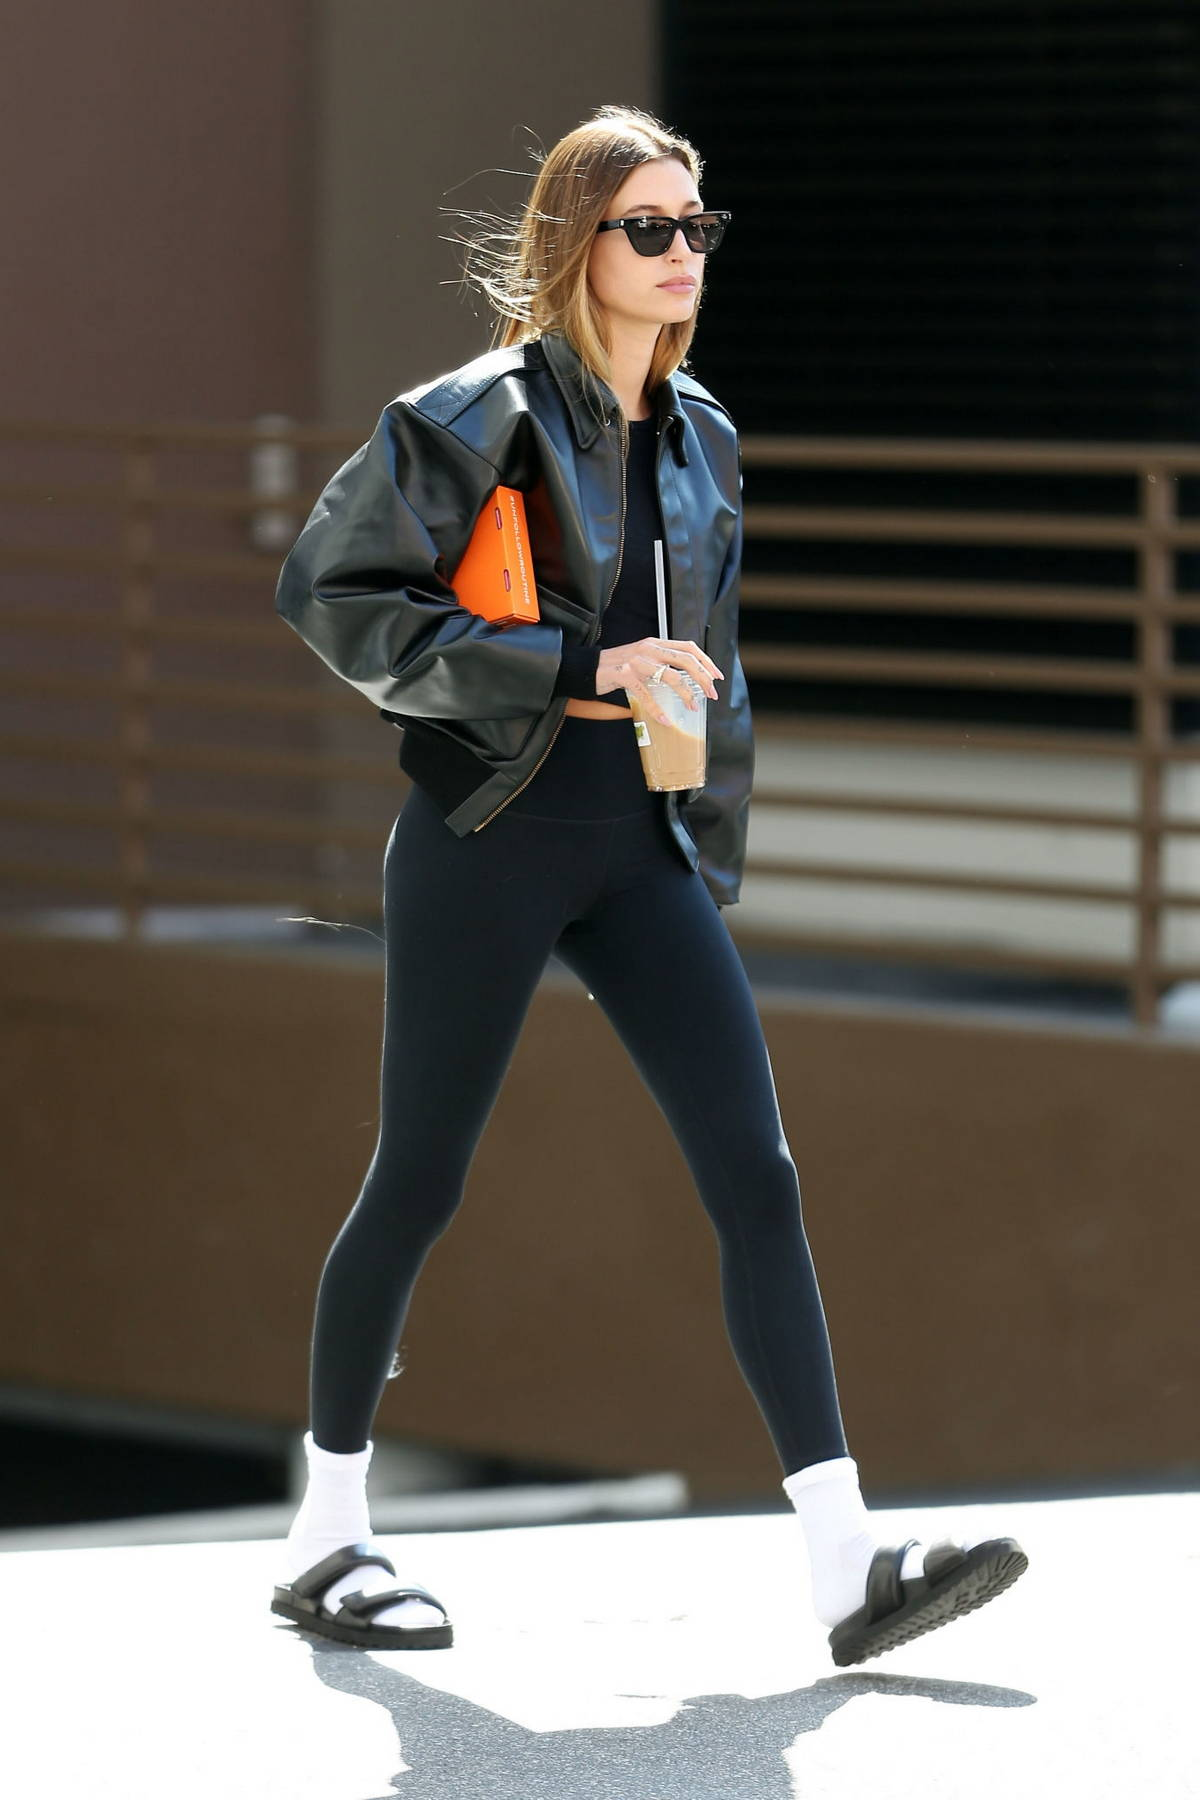 Hailey Bieber rocks a black leather jacket and leggings while heading for a meeting in Los Angeles